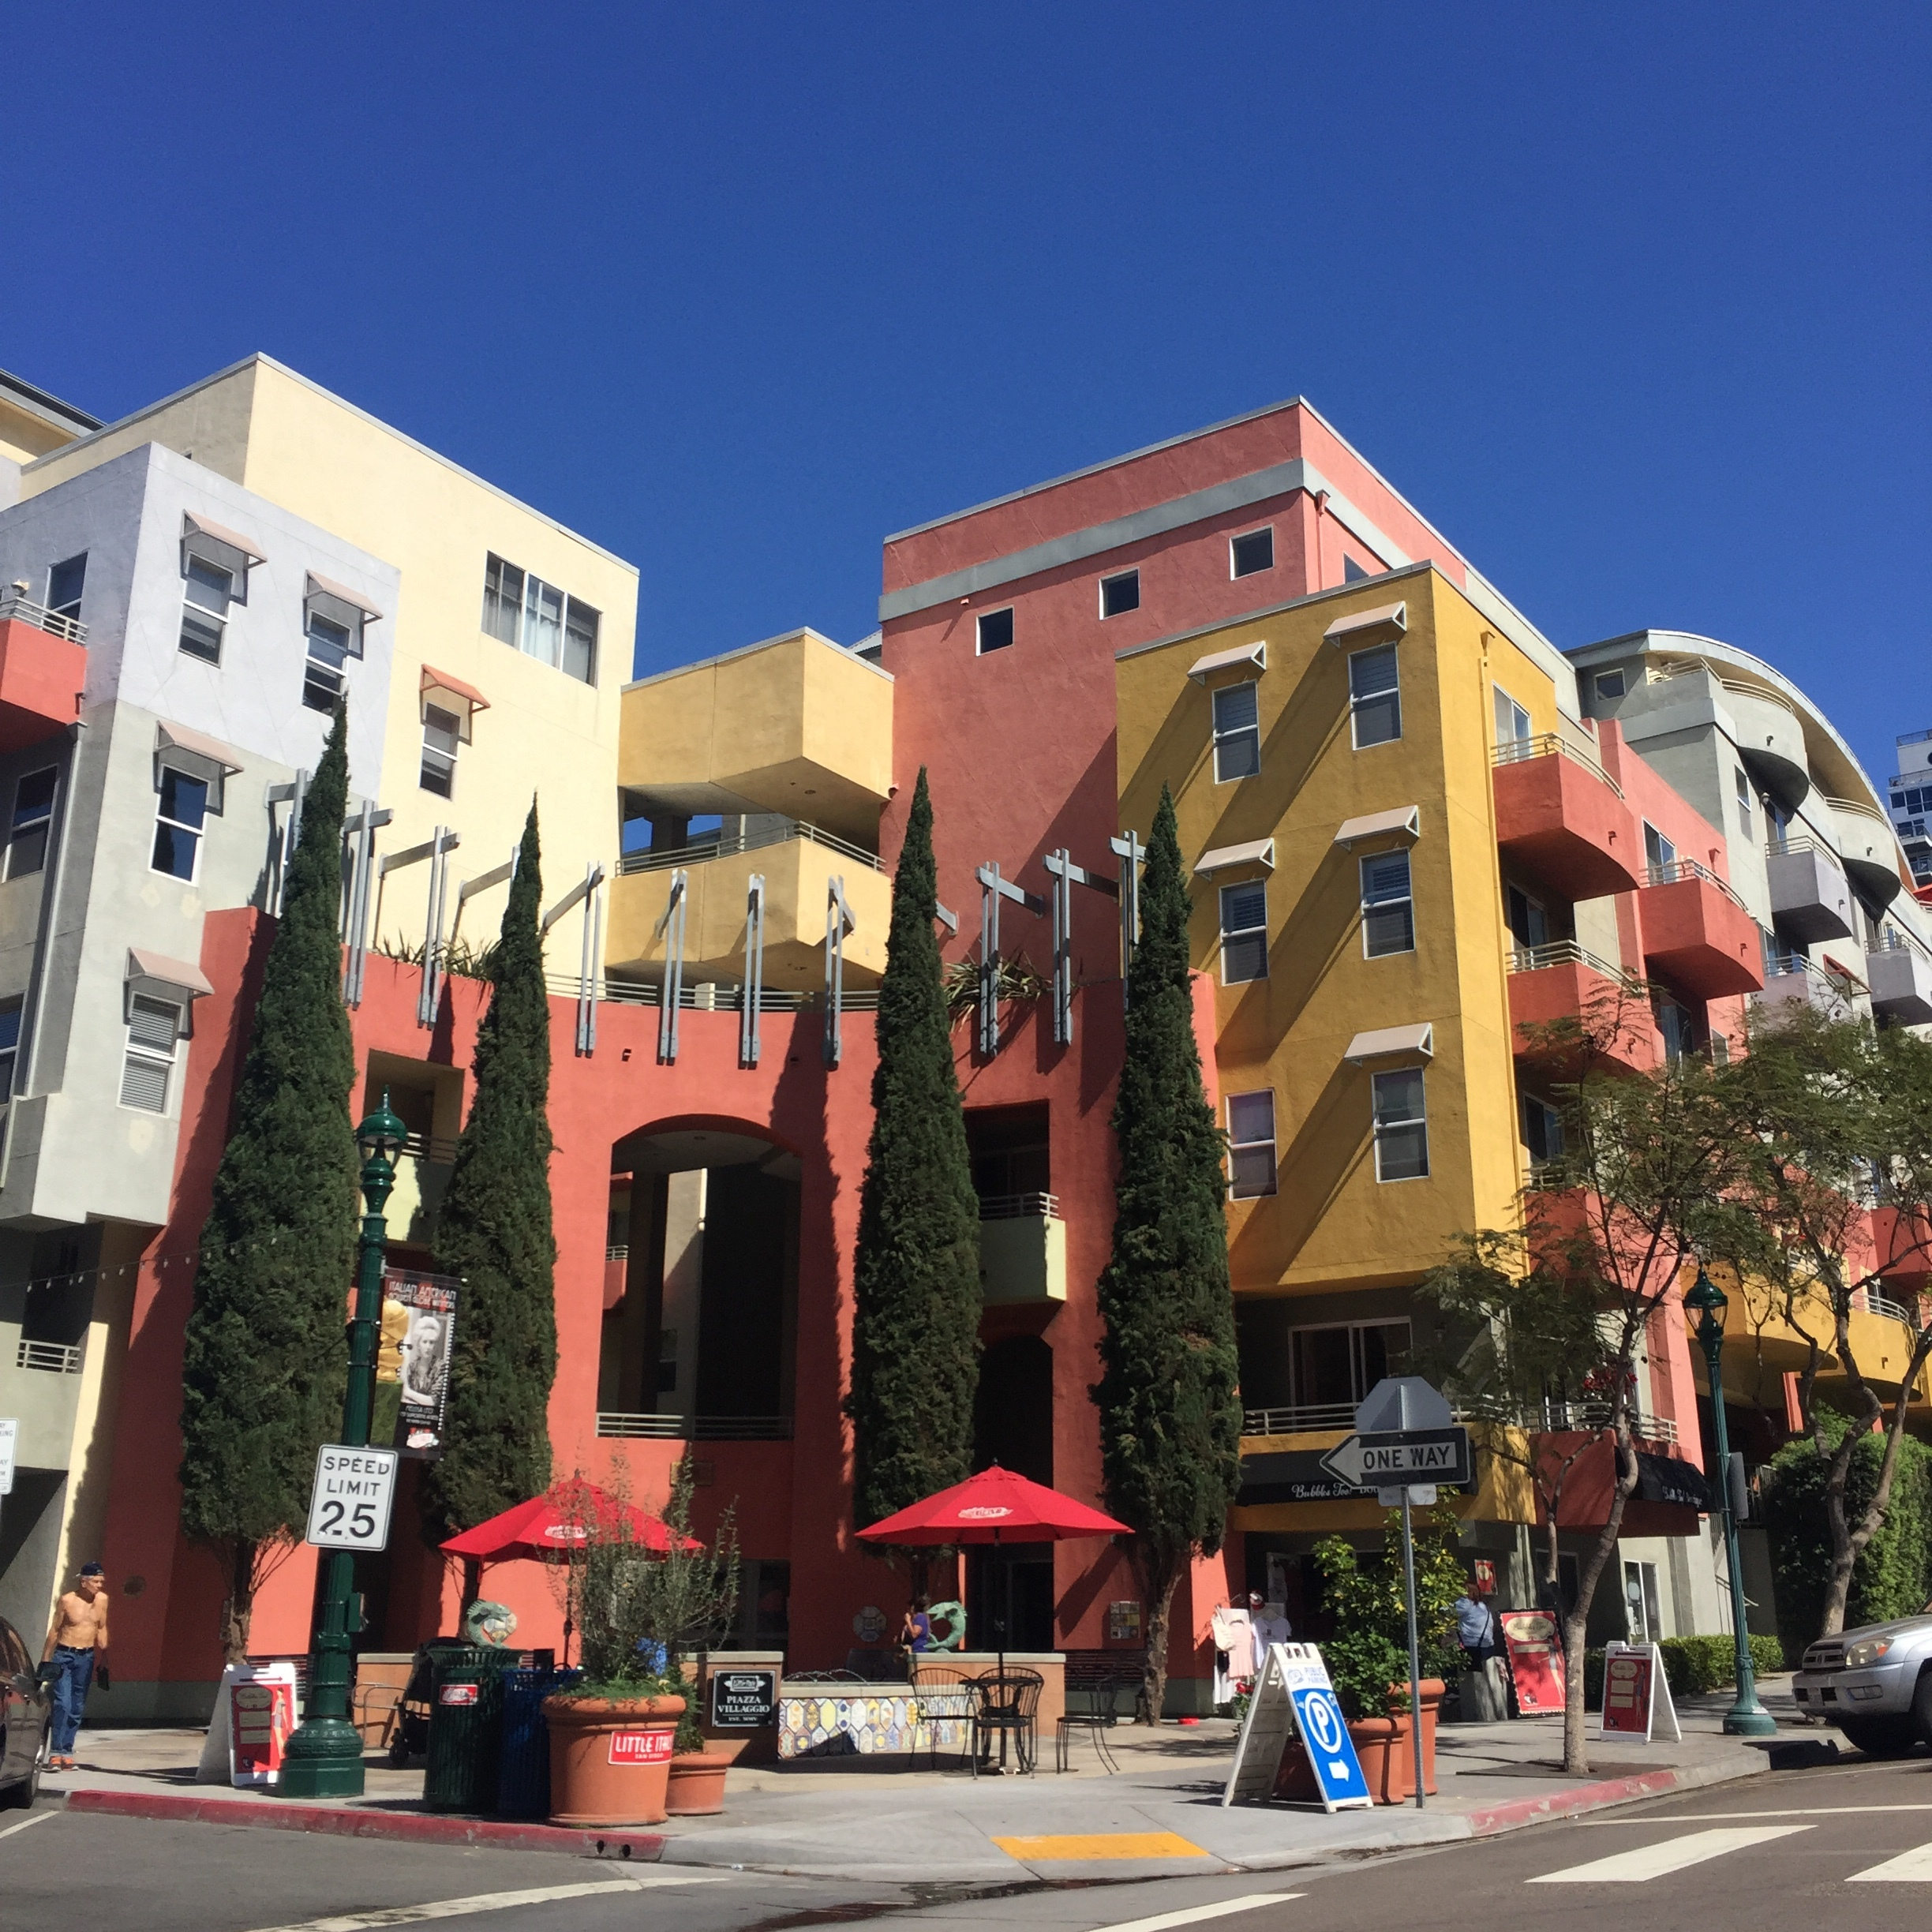 We began by cruising through colorful Little Italy.